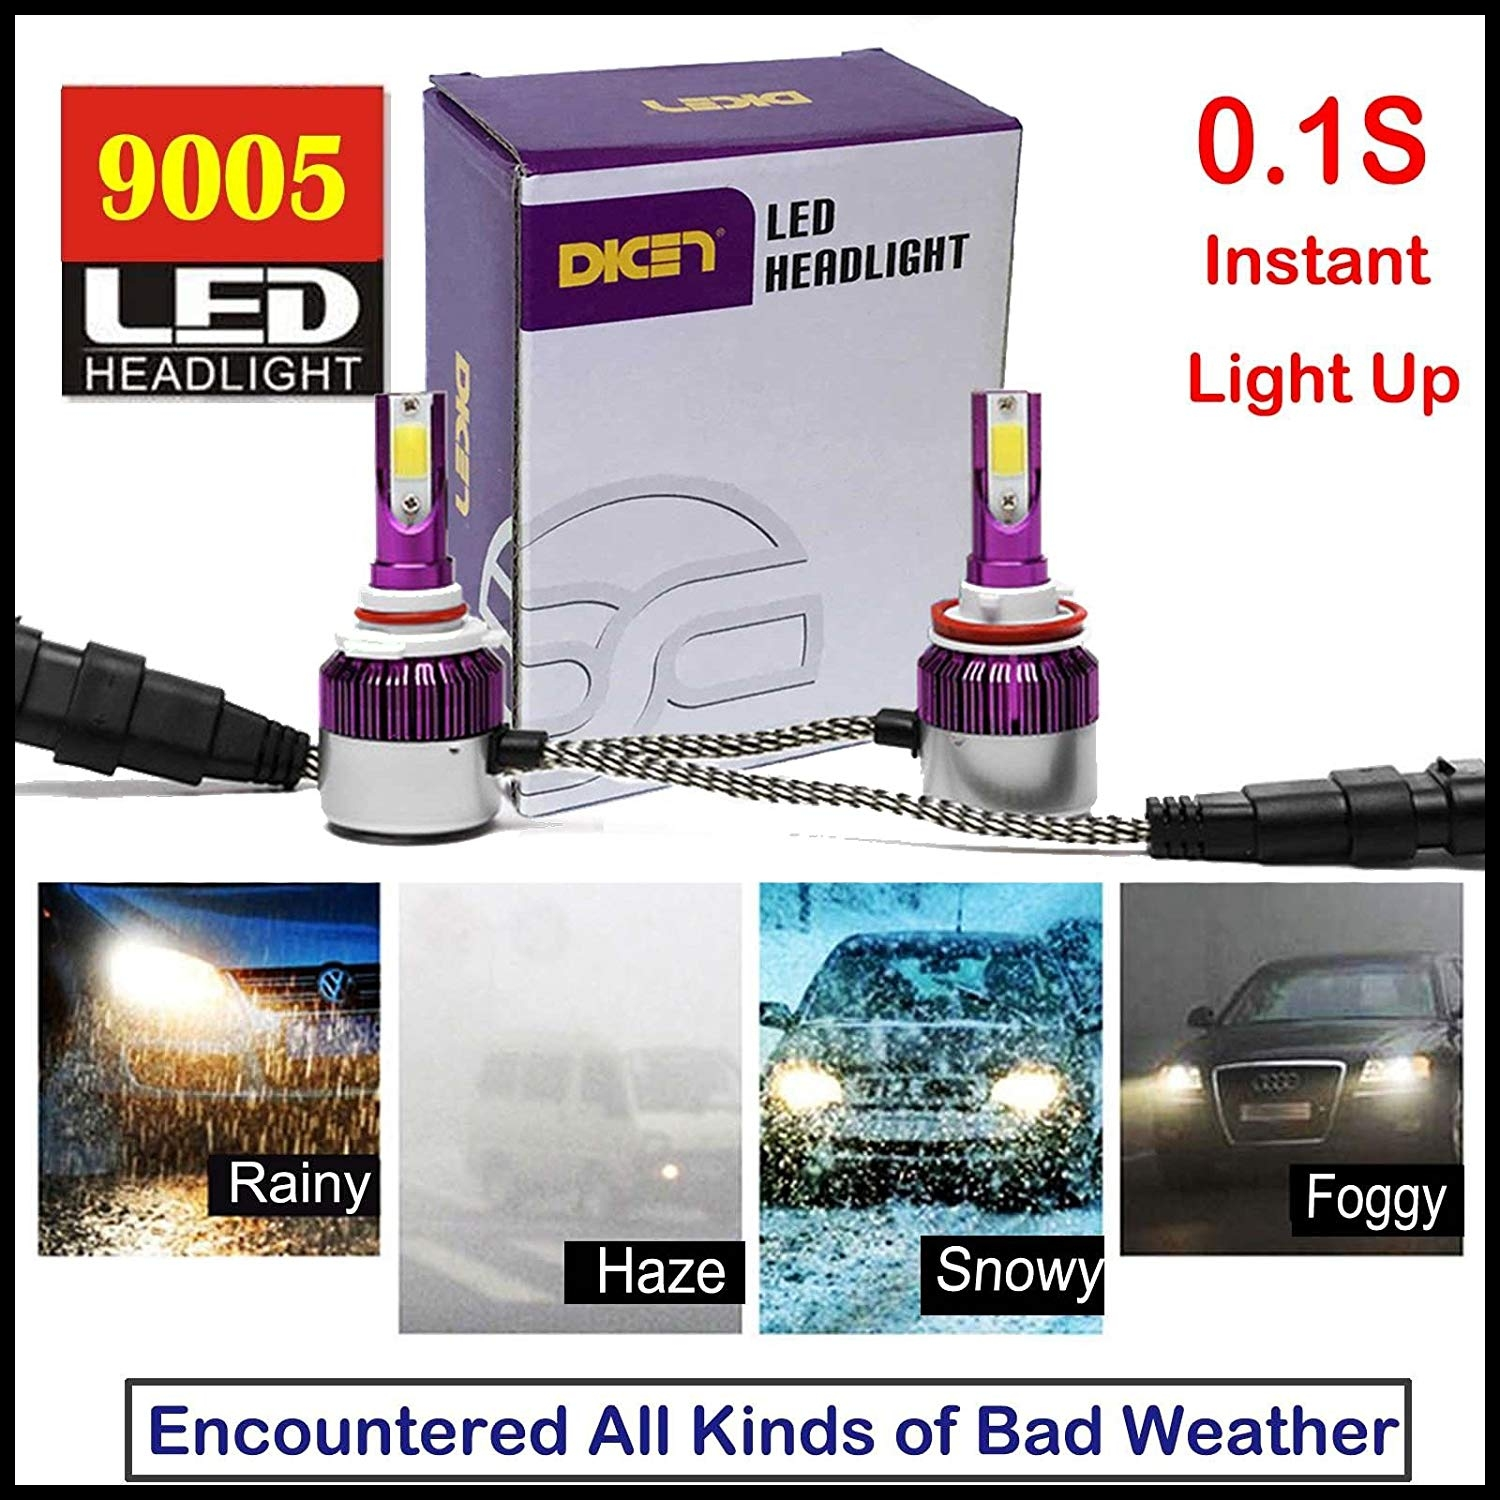 Amazon 9005 HB3 H10 LED Headlight High Beam Bulb Kit Super Bright 6000K White 7200LM Replacement Bulbs Set Plug & Play 2 Year Guarantee Automotive